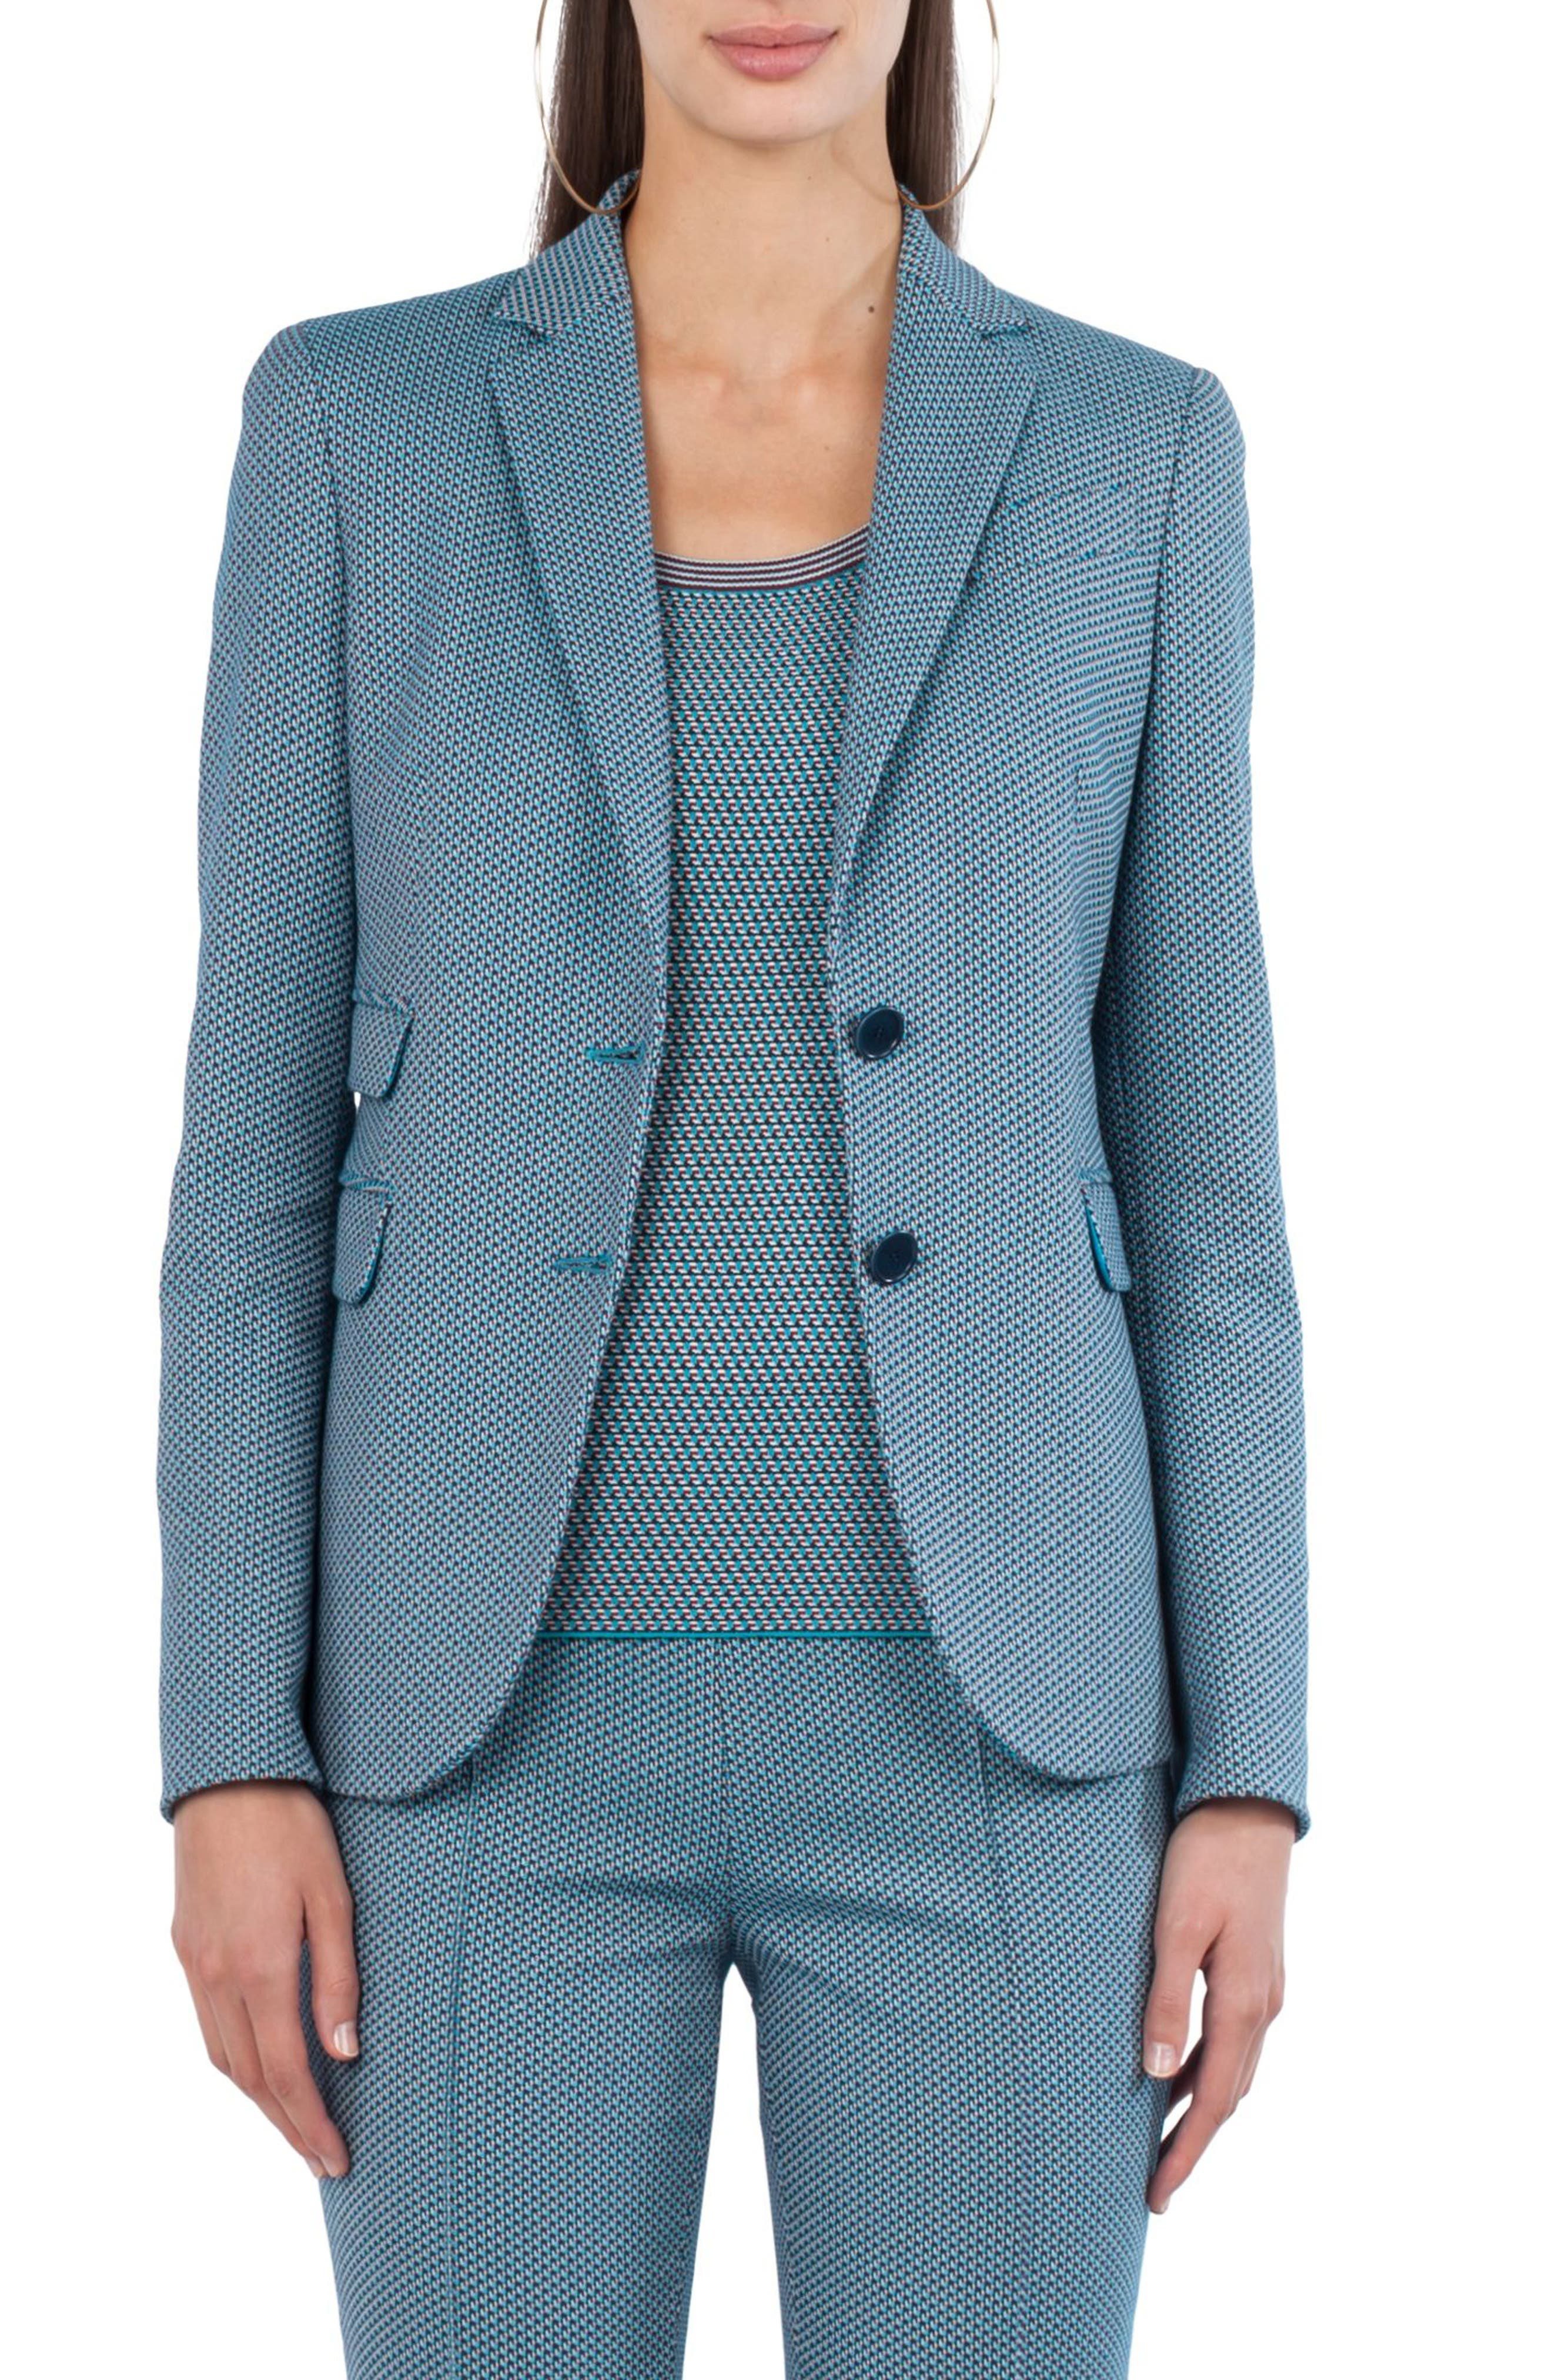 Fantasy Jacquard Knit Blazer,                         Main,                         color, 476